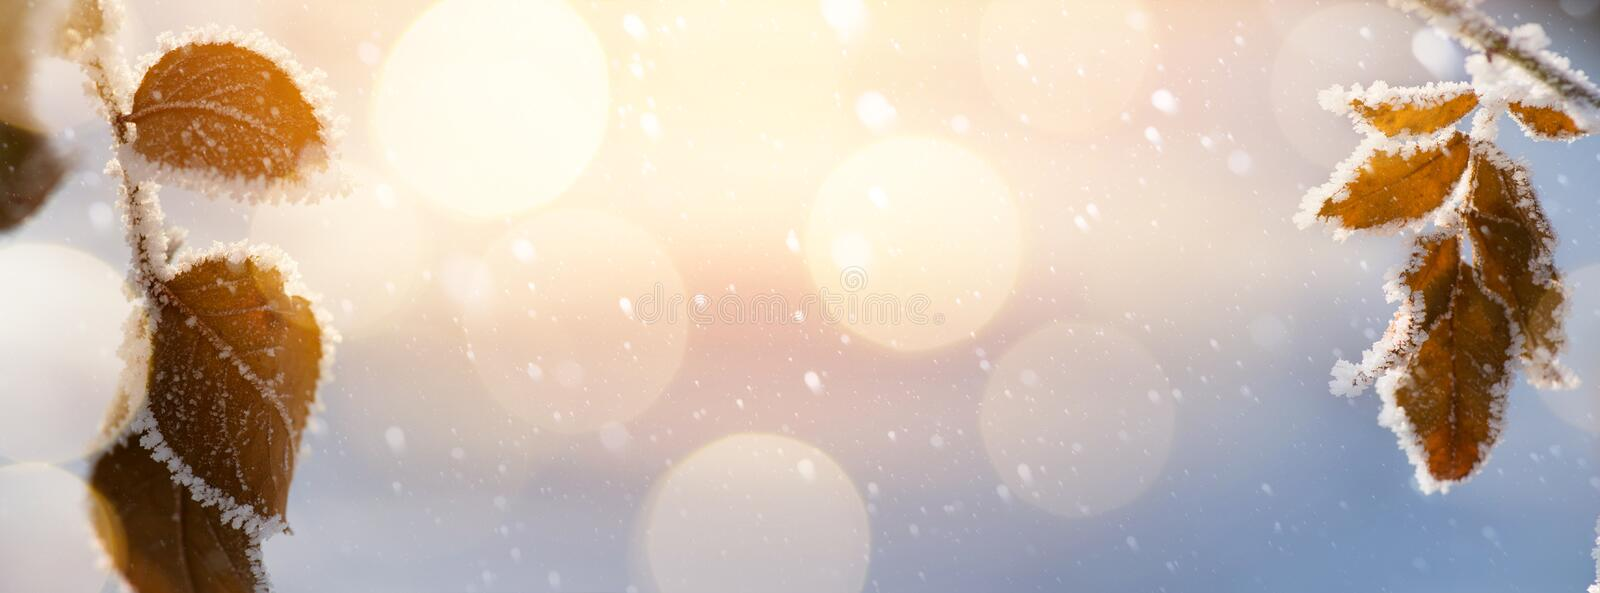 Abstract Christmas background. Winter Landscape royalty free stock image